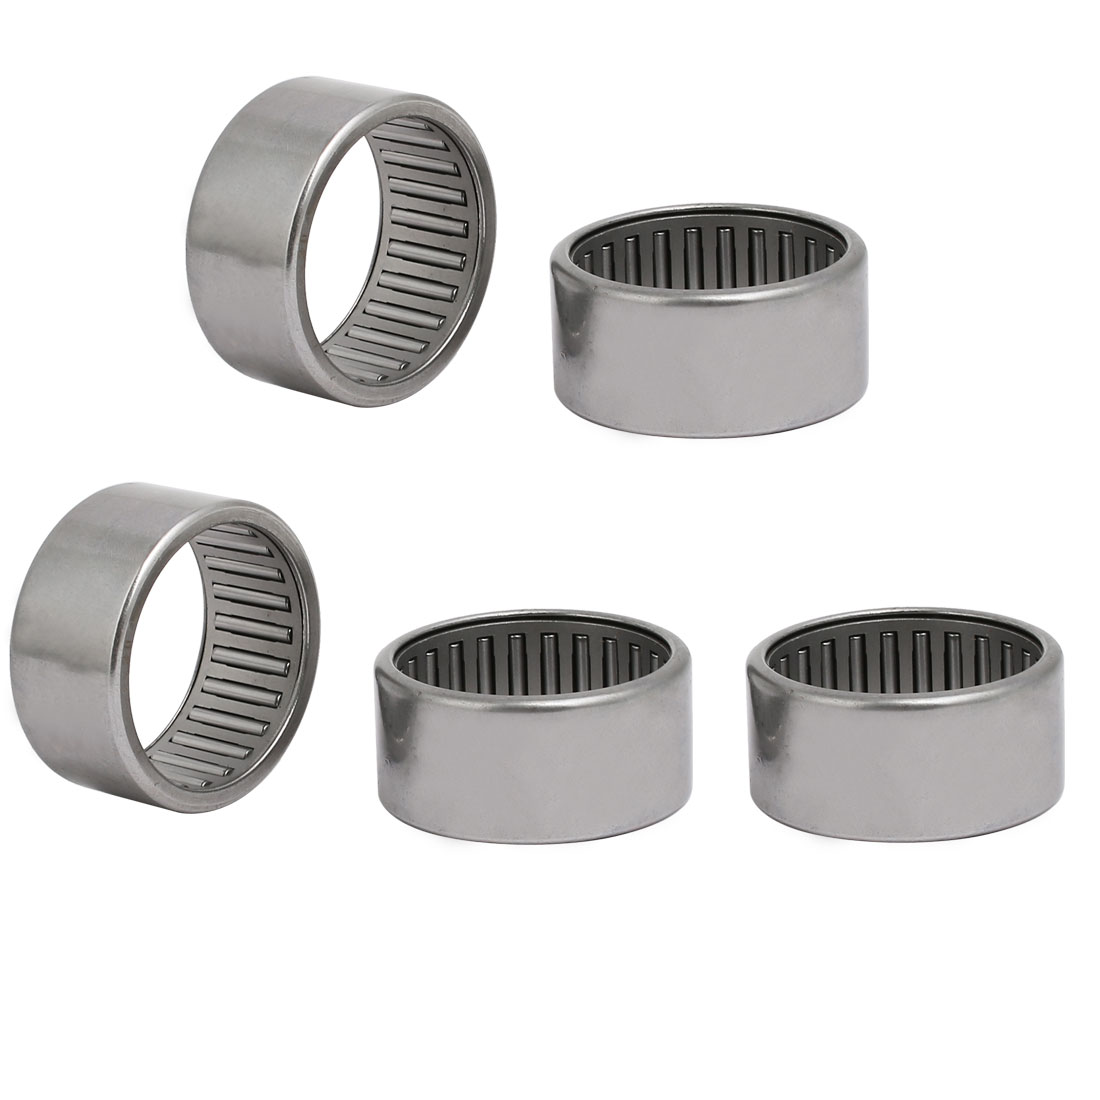 HK3520 42mmx35mmx20mm Drawn Cup Open End Needle Roller Bearing Silver Tone 5pcs